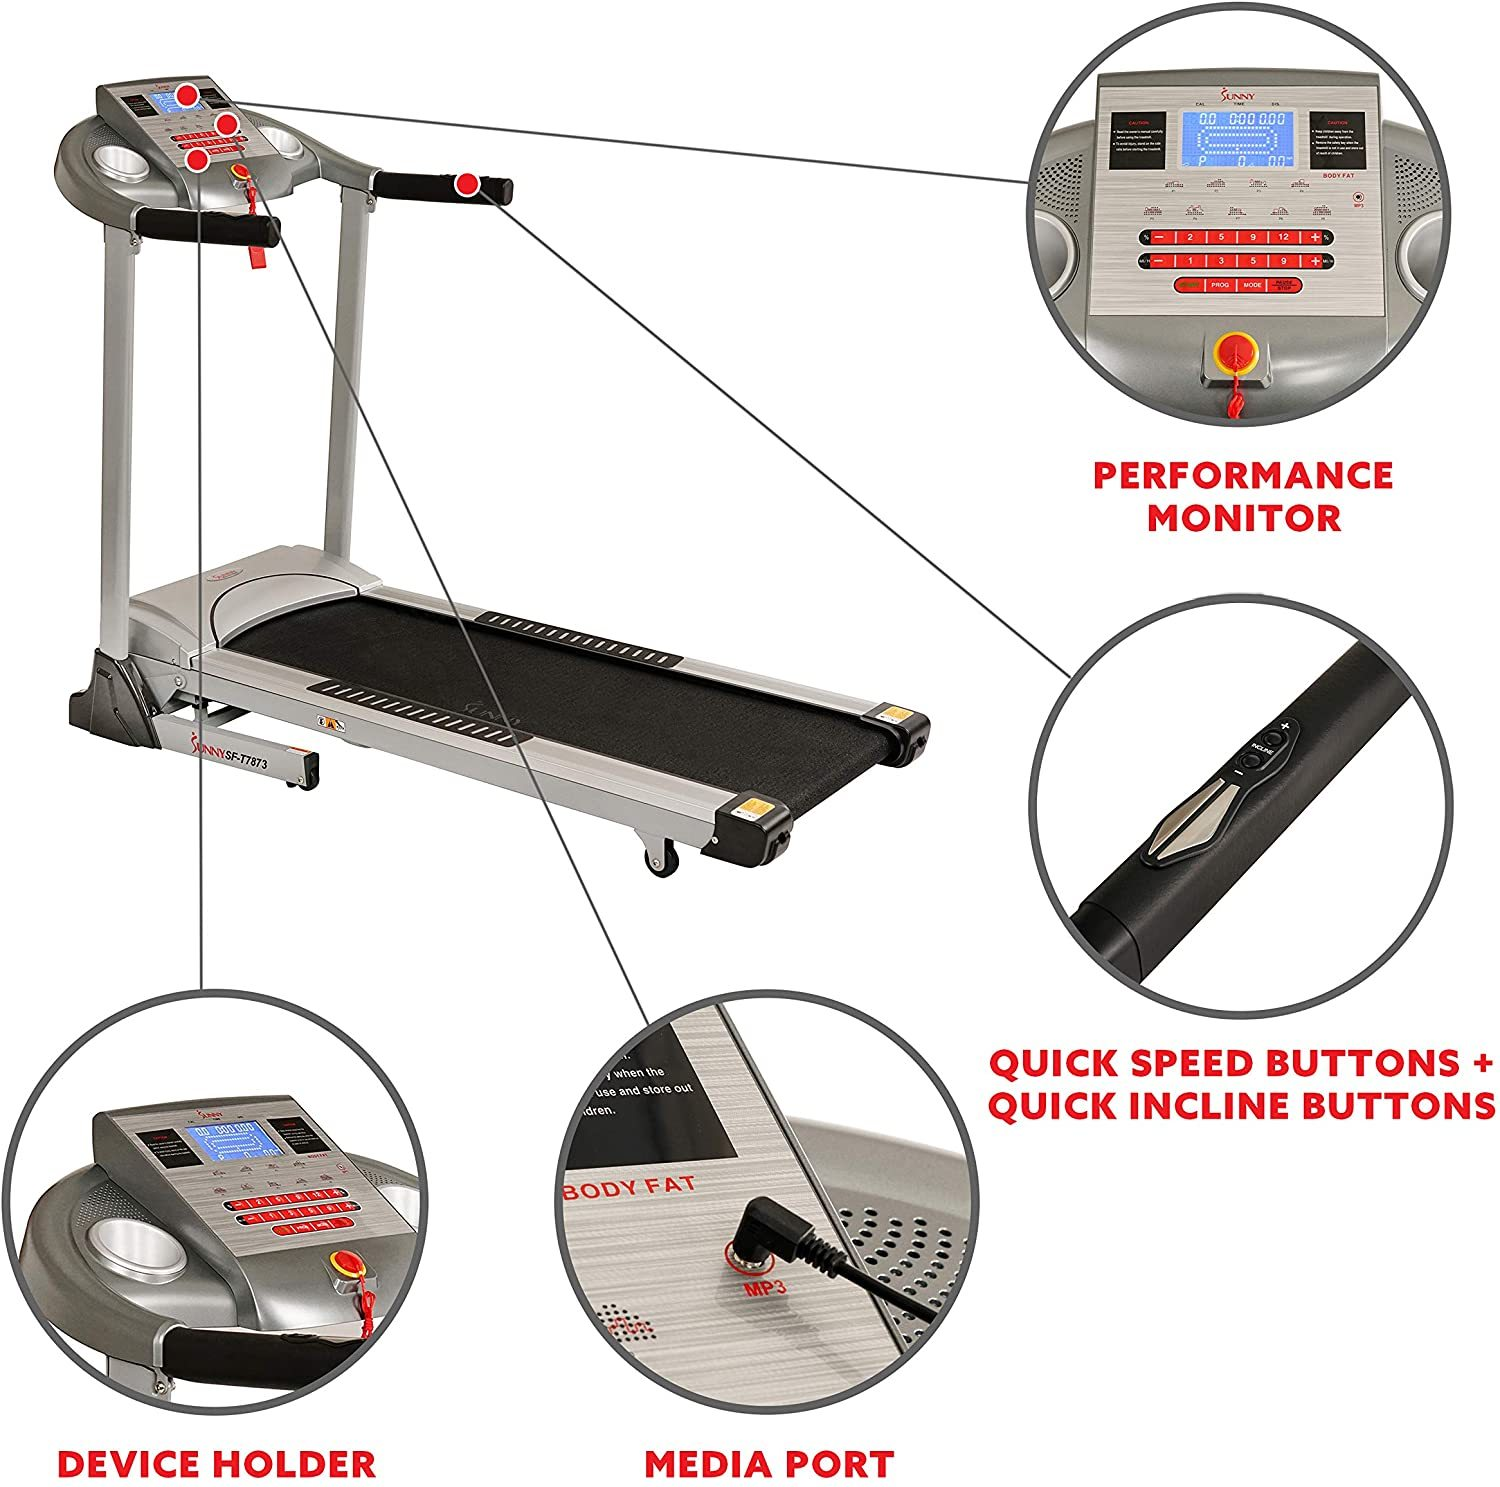 Electric Treadmill with 11 MPH Max Speed, LCD and Pulse Monitor,Auto Incline, 285 LB Max Weight, Speakers and Body Fat Function